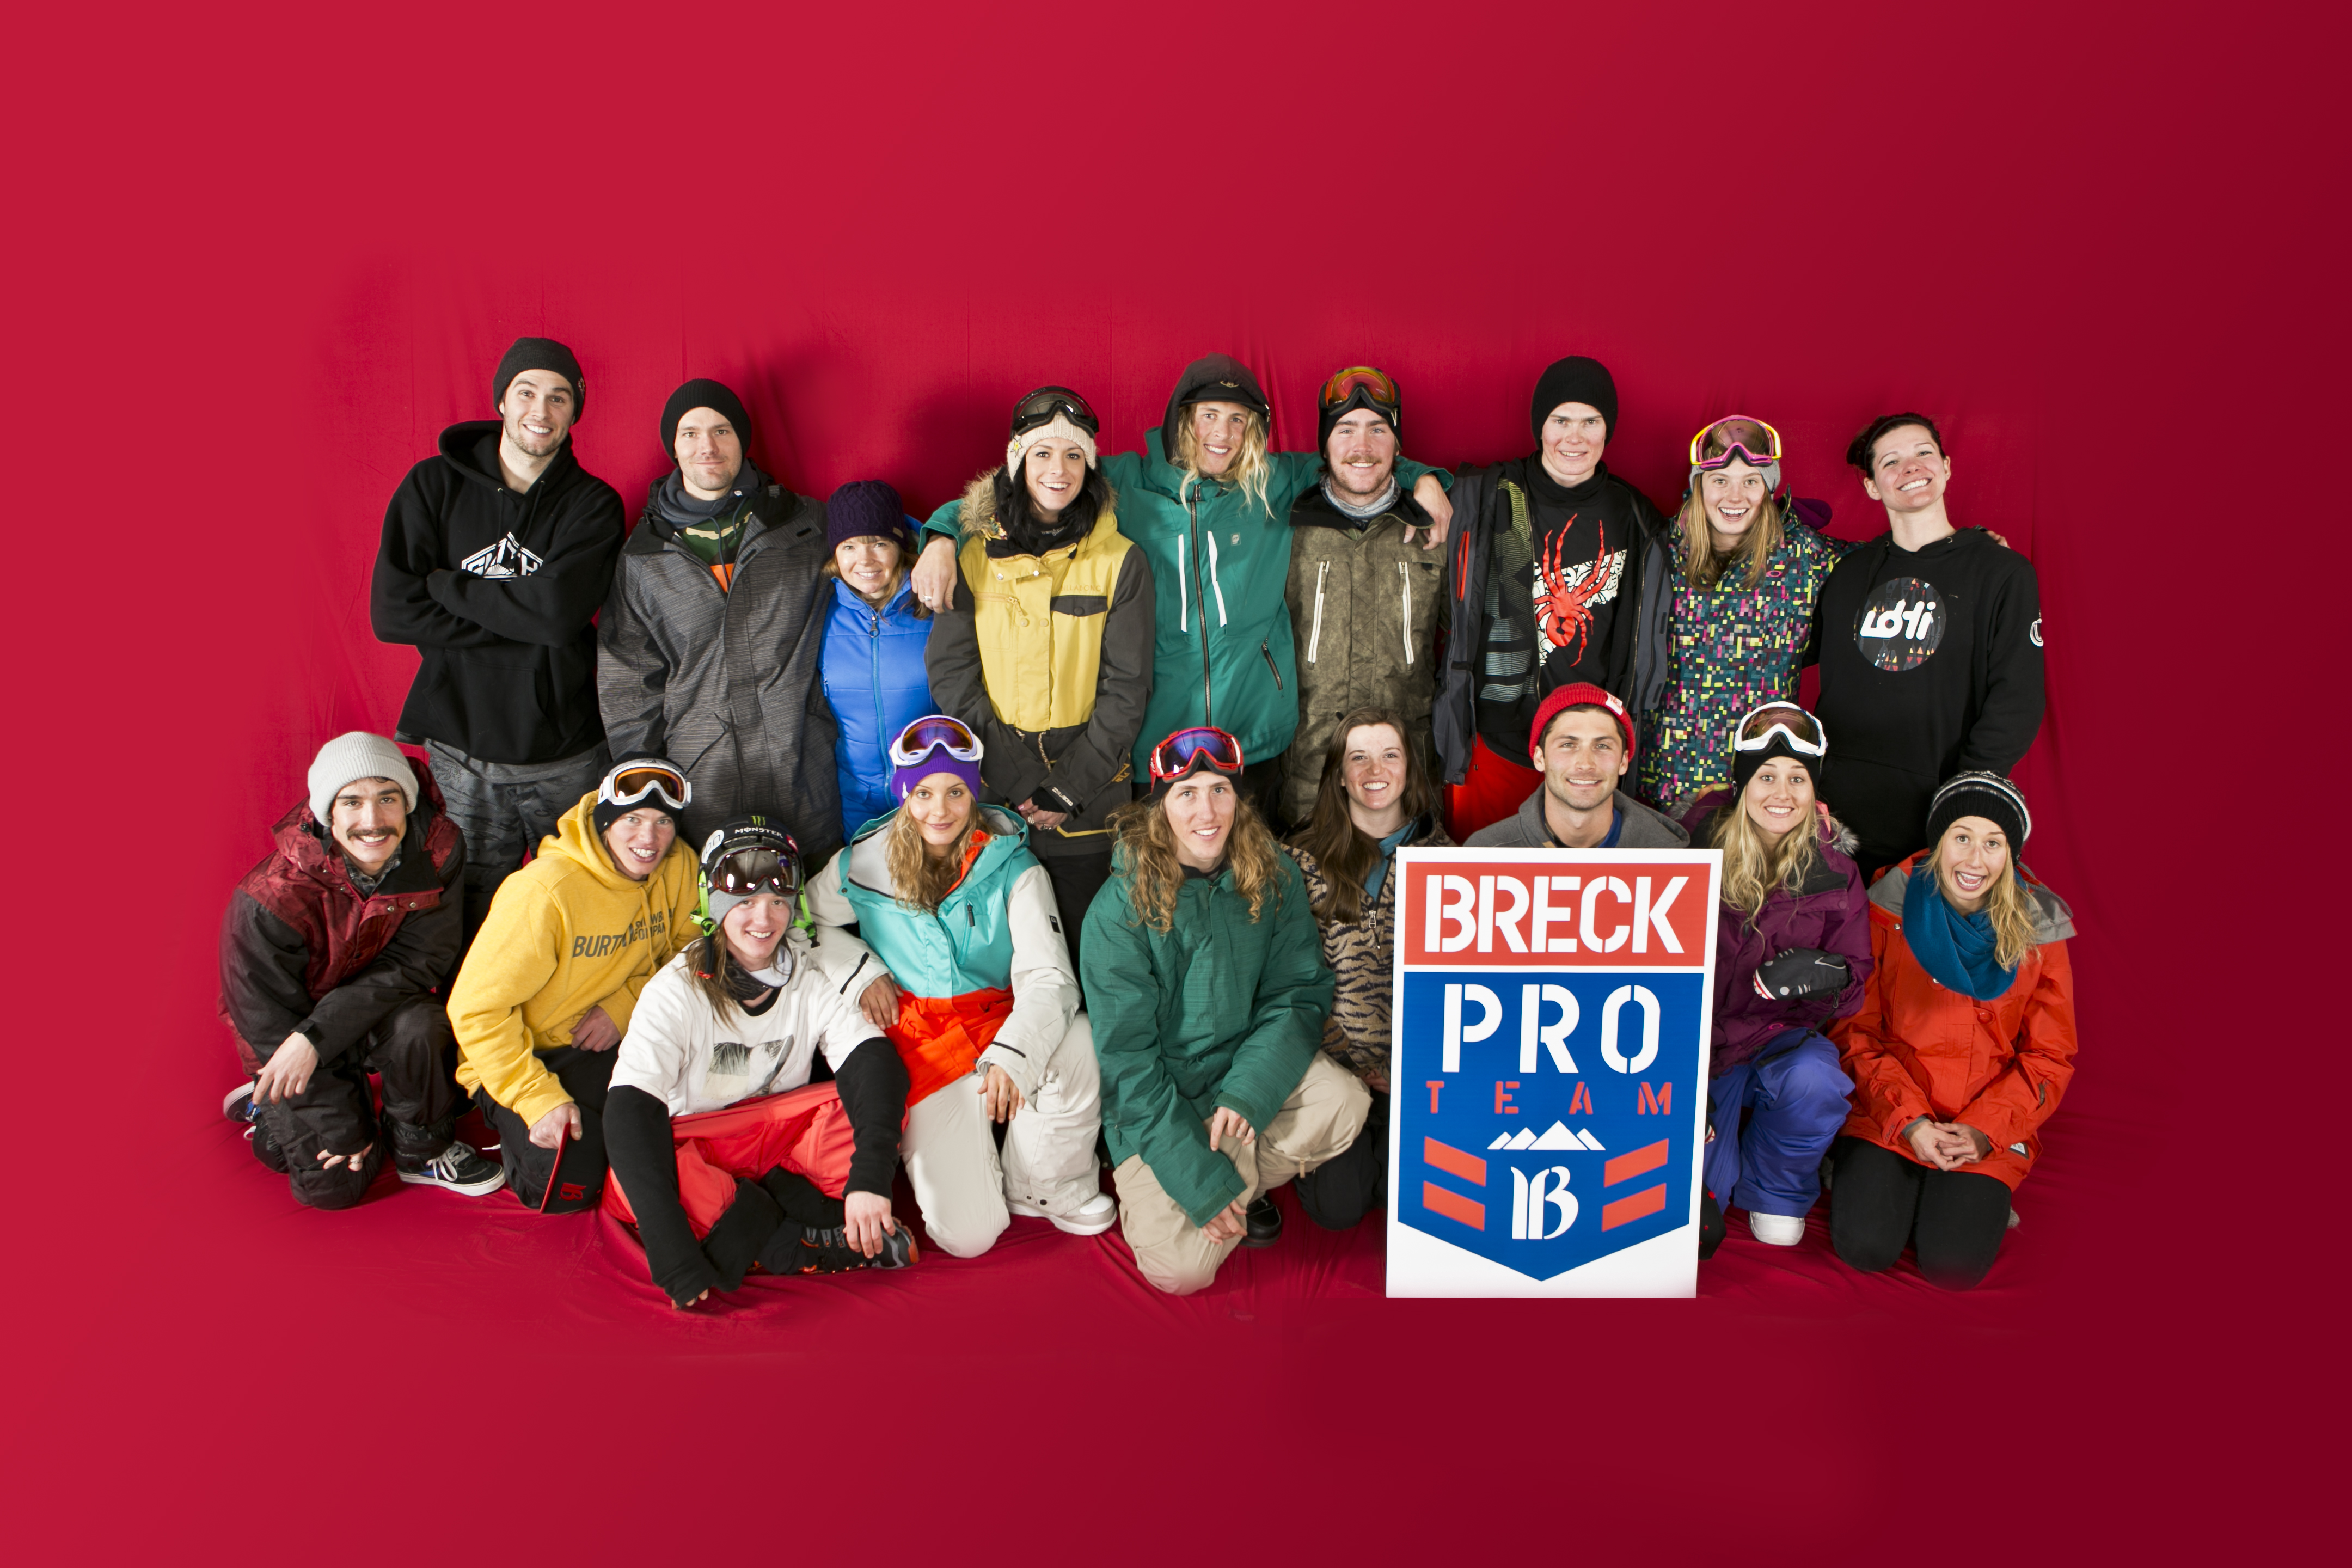 Announcing the Breck Pro Team